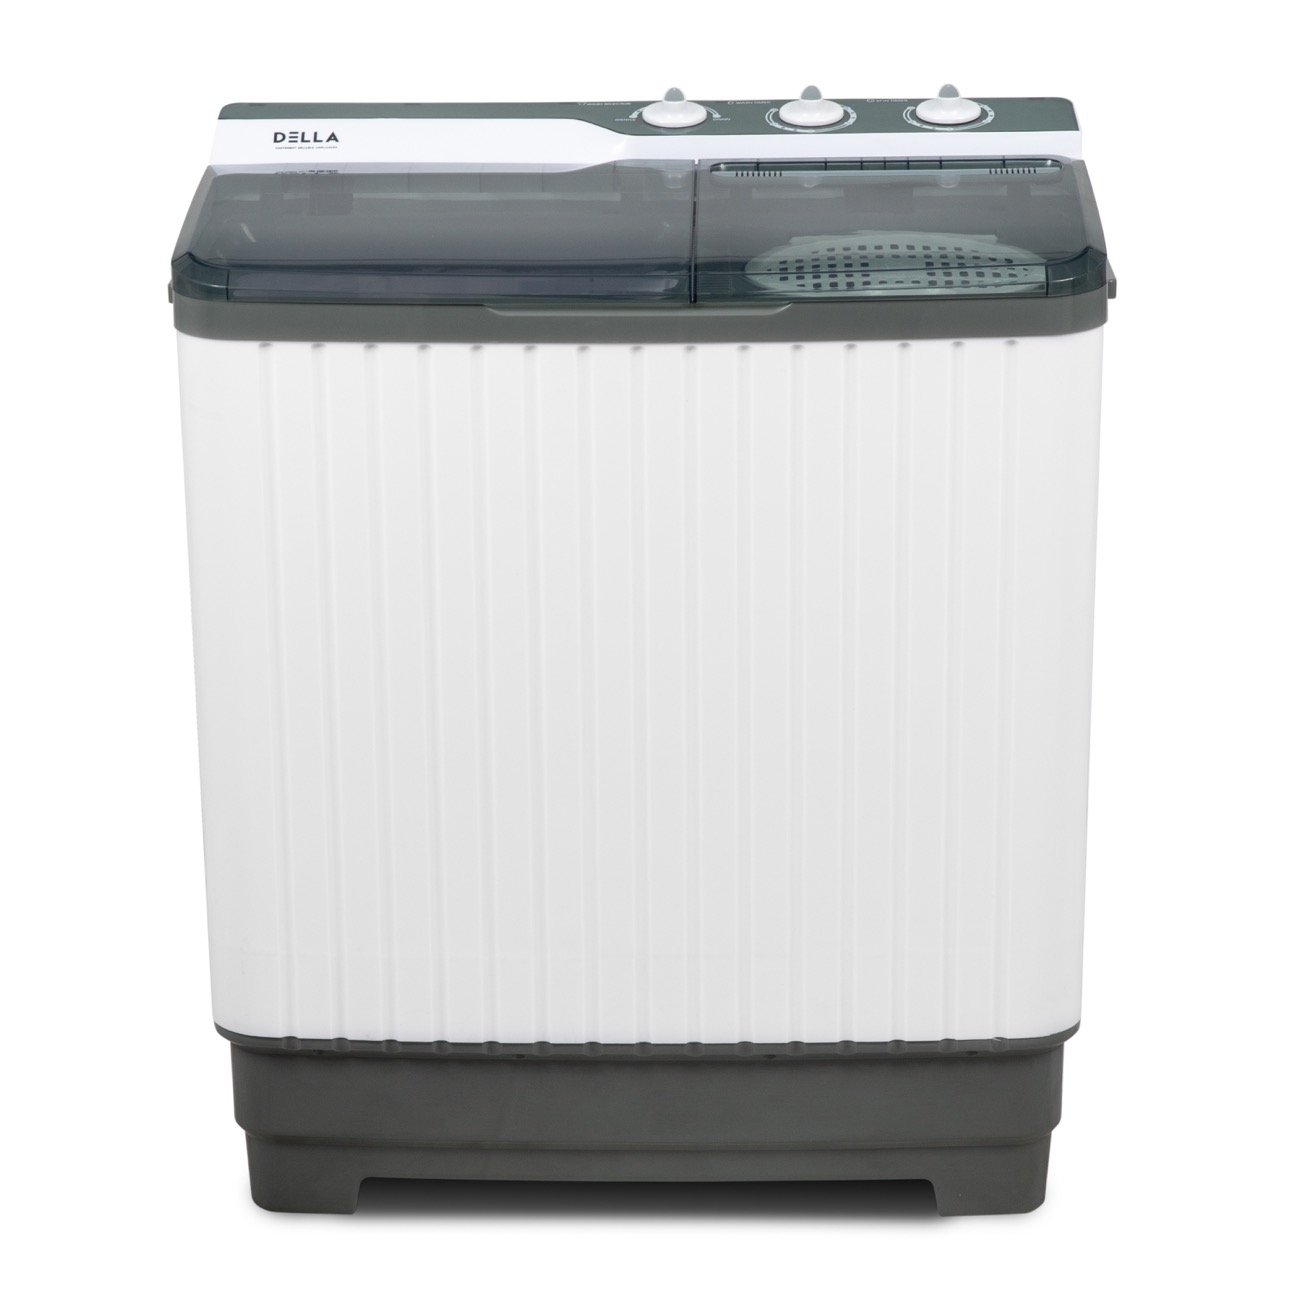 Della 9kg Portable Mini Compact Twin Tub Washing Machine